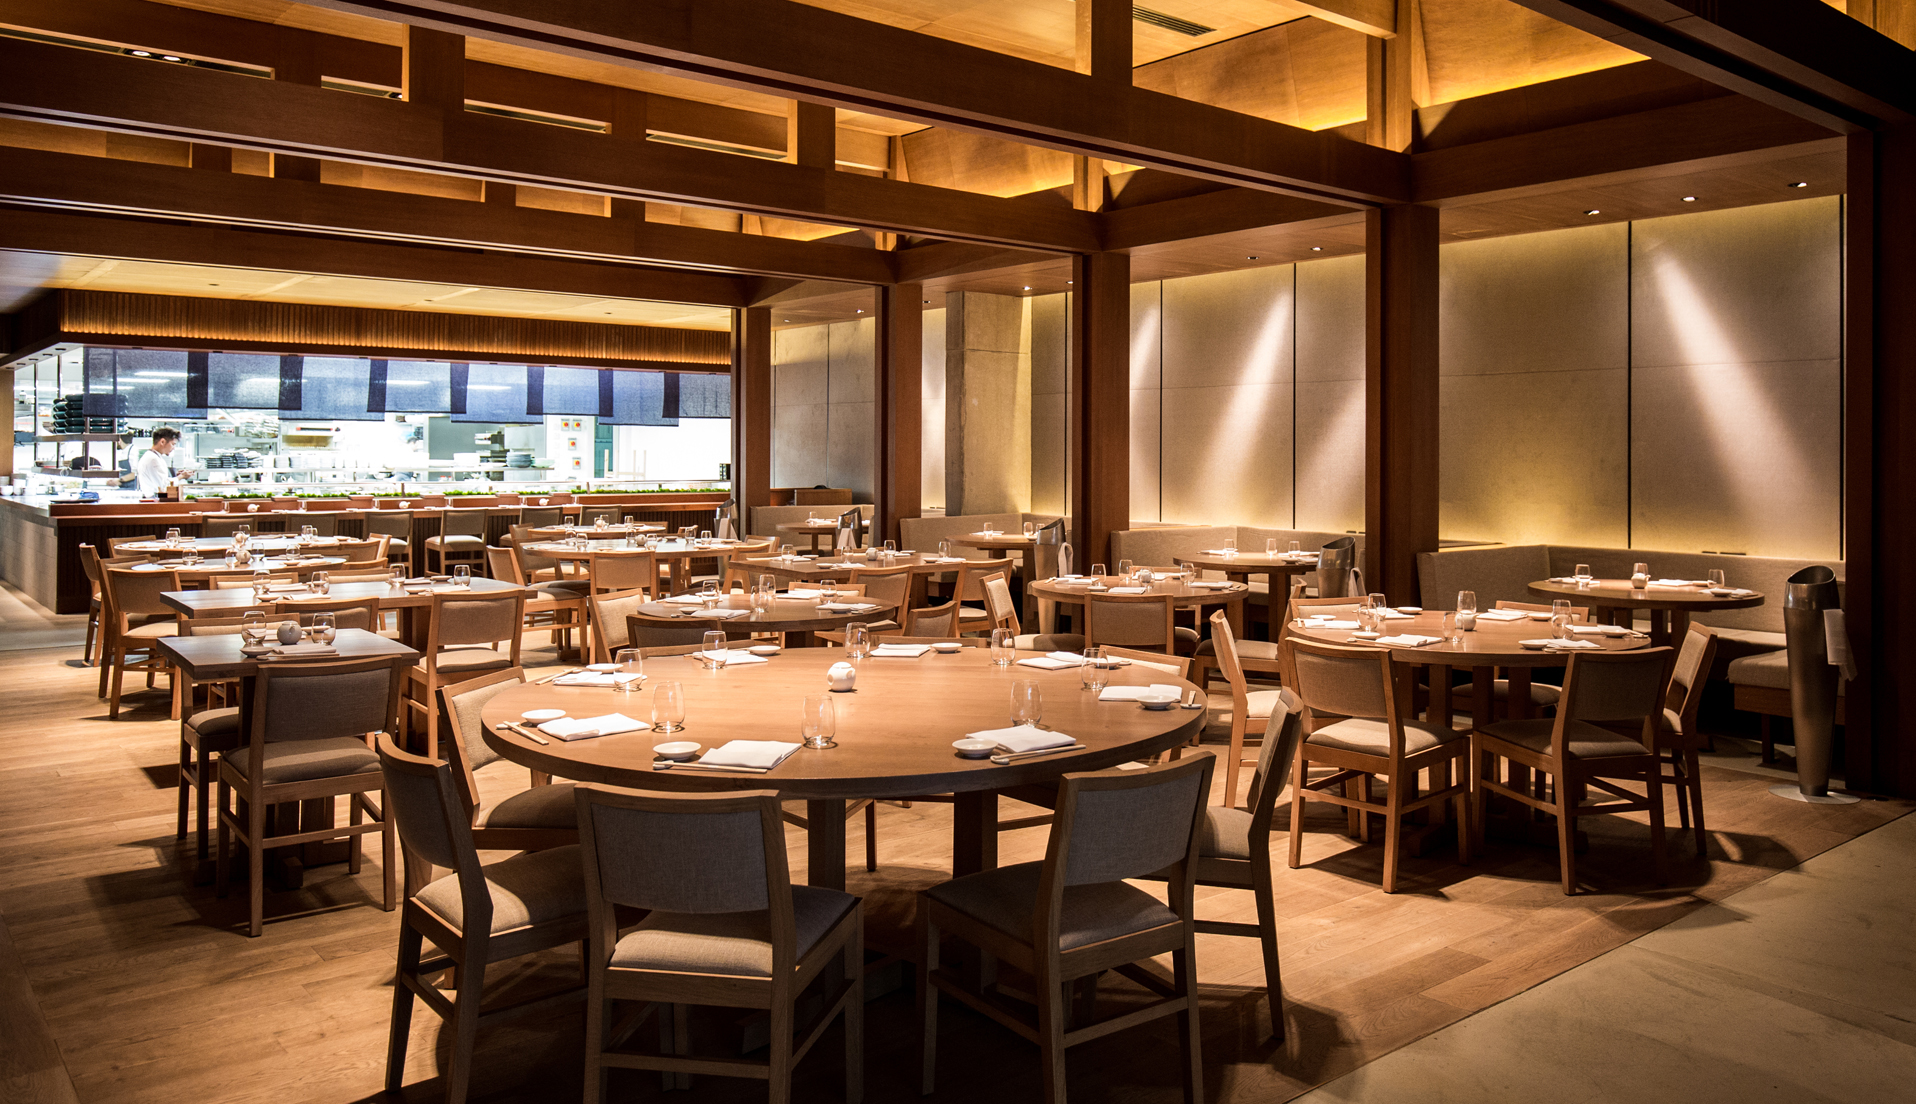 Nobu Shoreditch london hotels restaurants dining room corporate hire events chefs cool arty designer interiors wooden beams glowing lighting